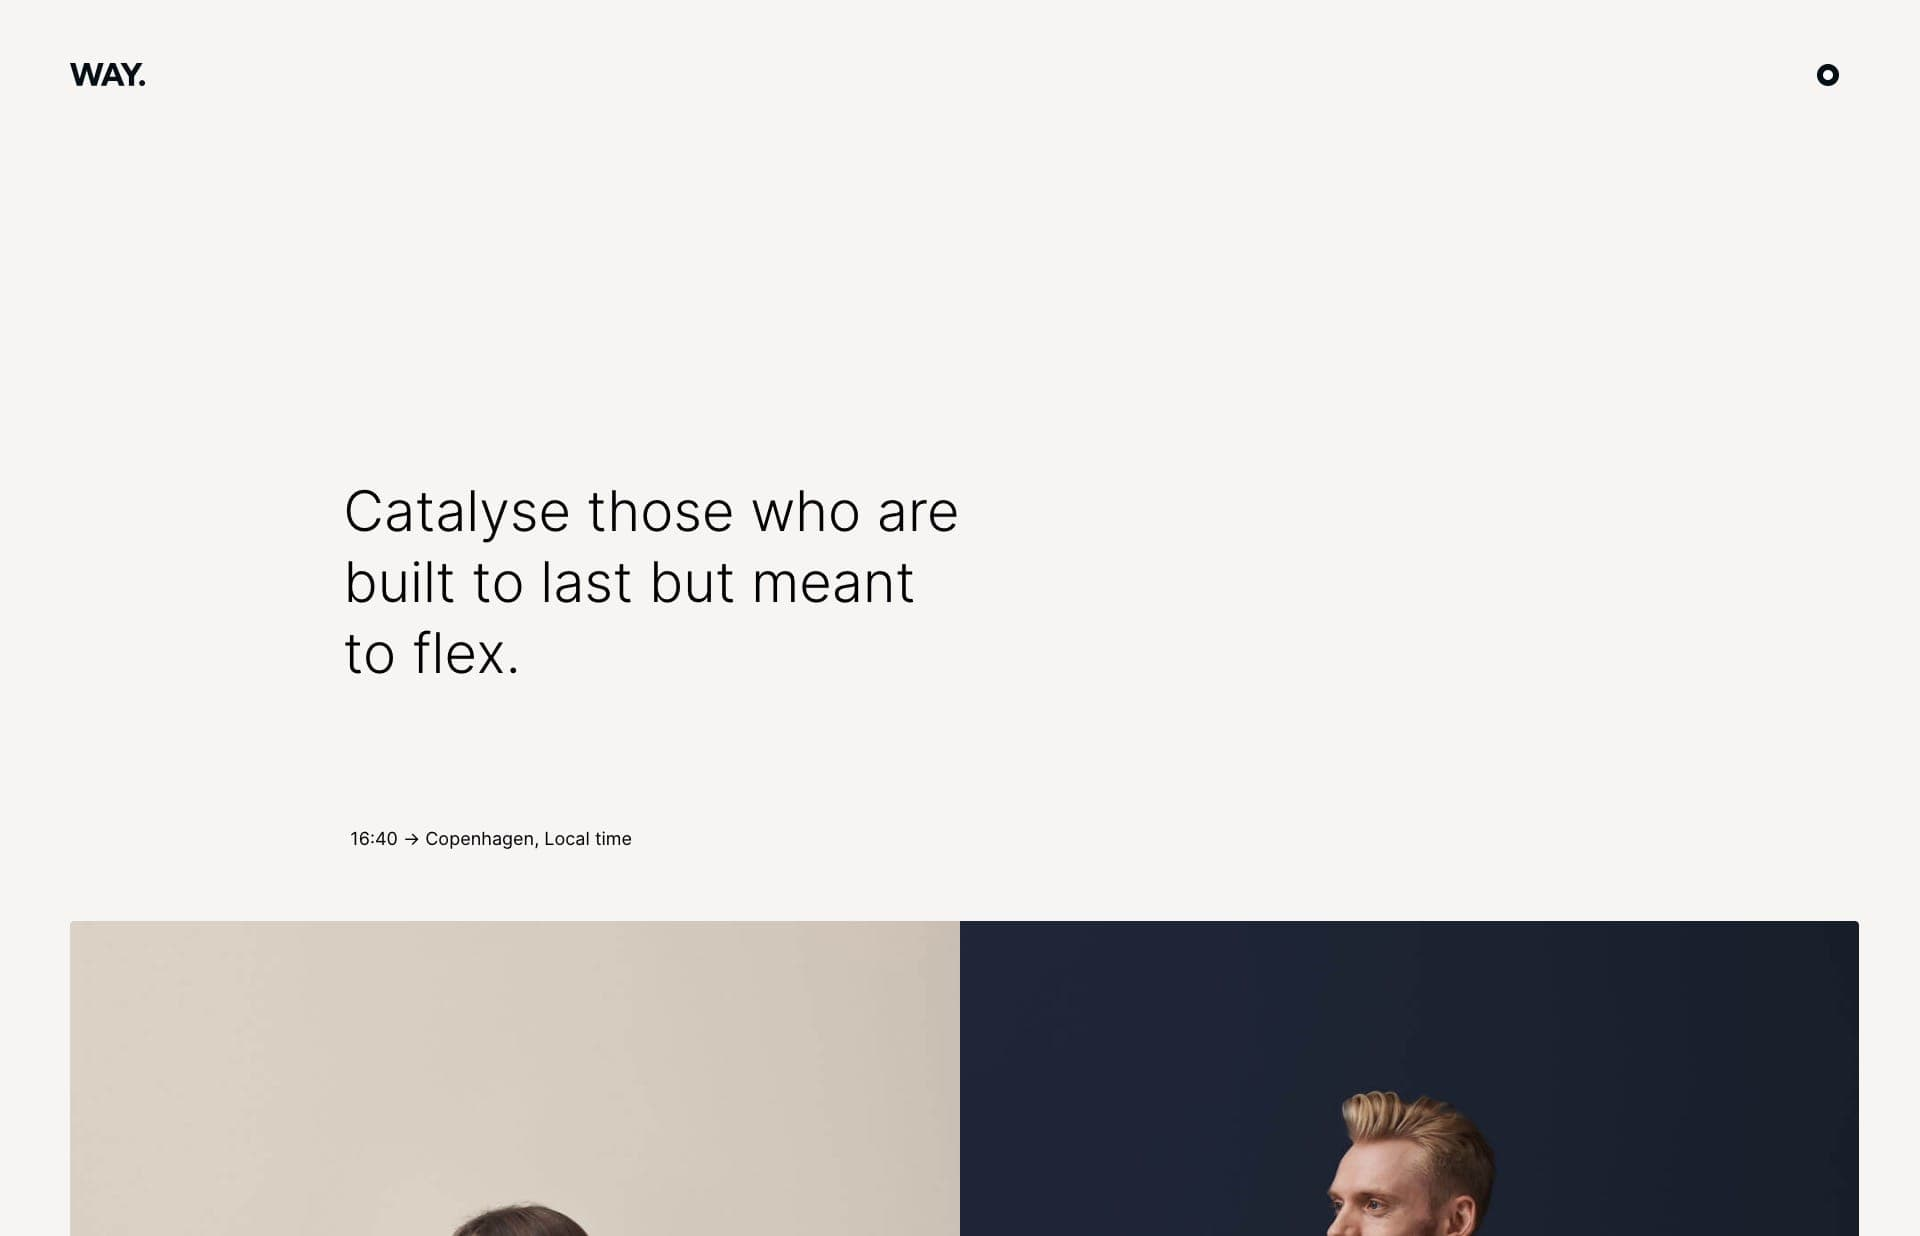 Screenshot of the website Way, featured on The Gallery, a curated collection of minimal websites